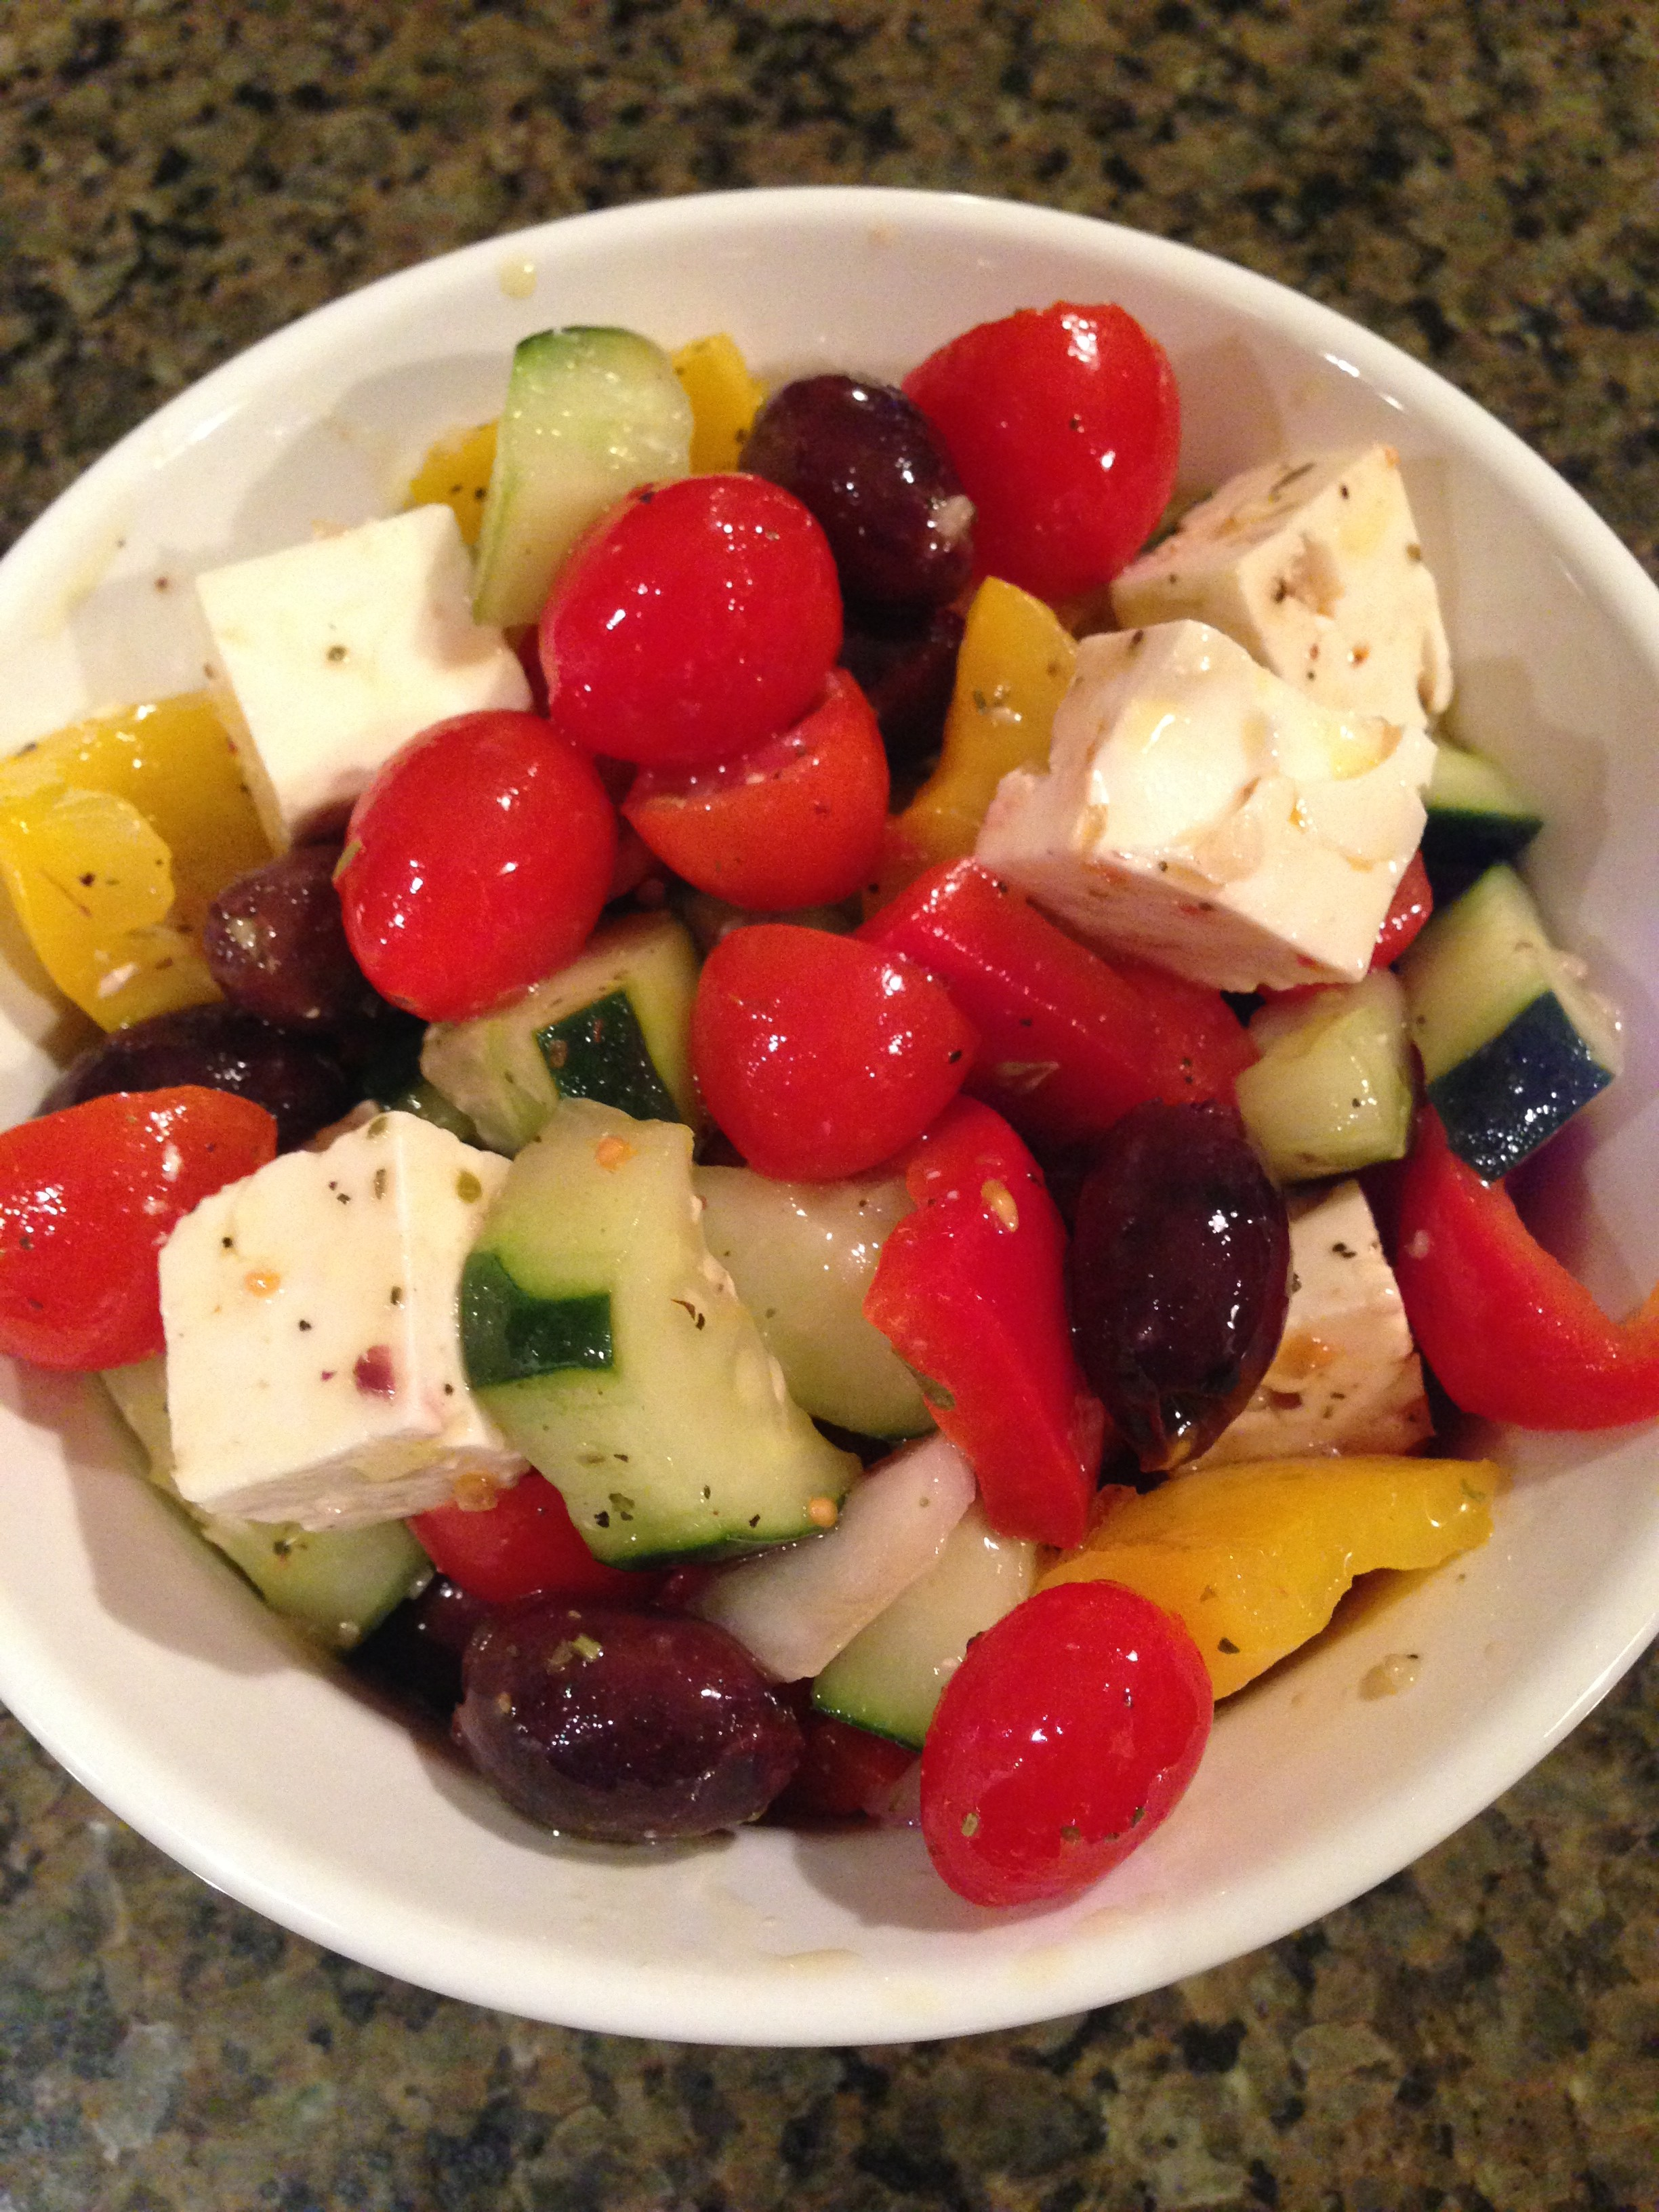 Ina Garten 39 S Greek Salad Tomatoes For Cucumbers